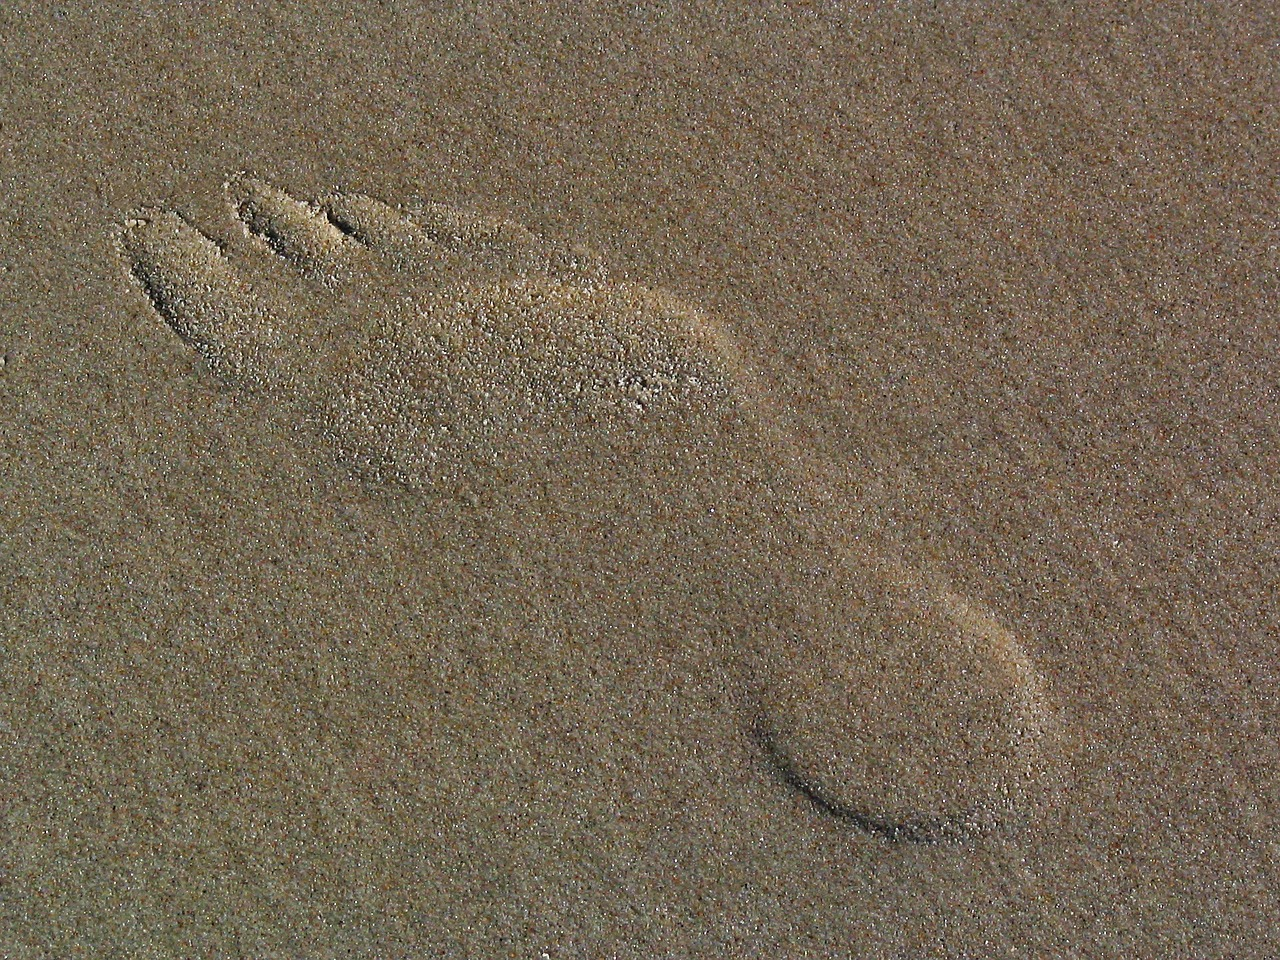 footprint in the sand traces sand free photo